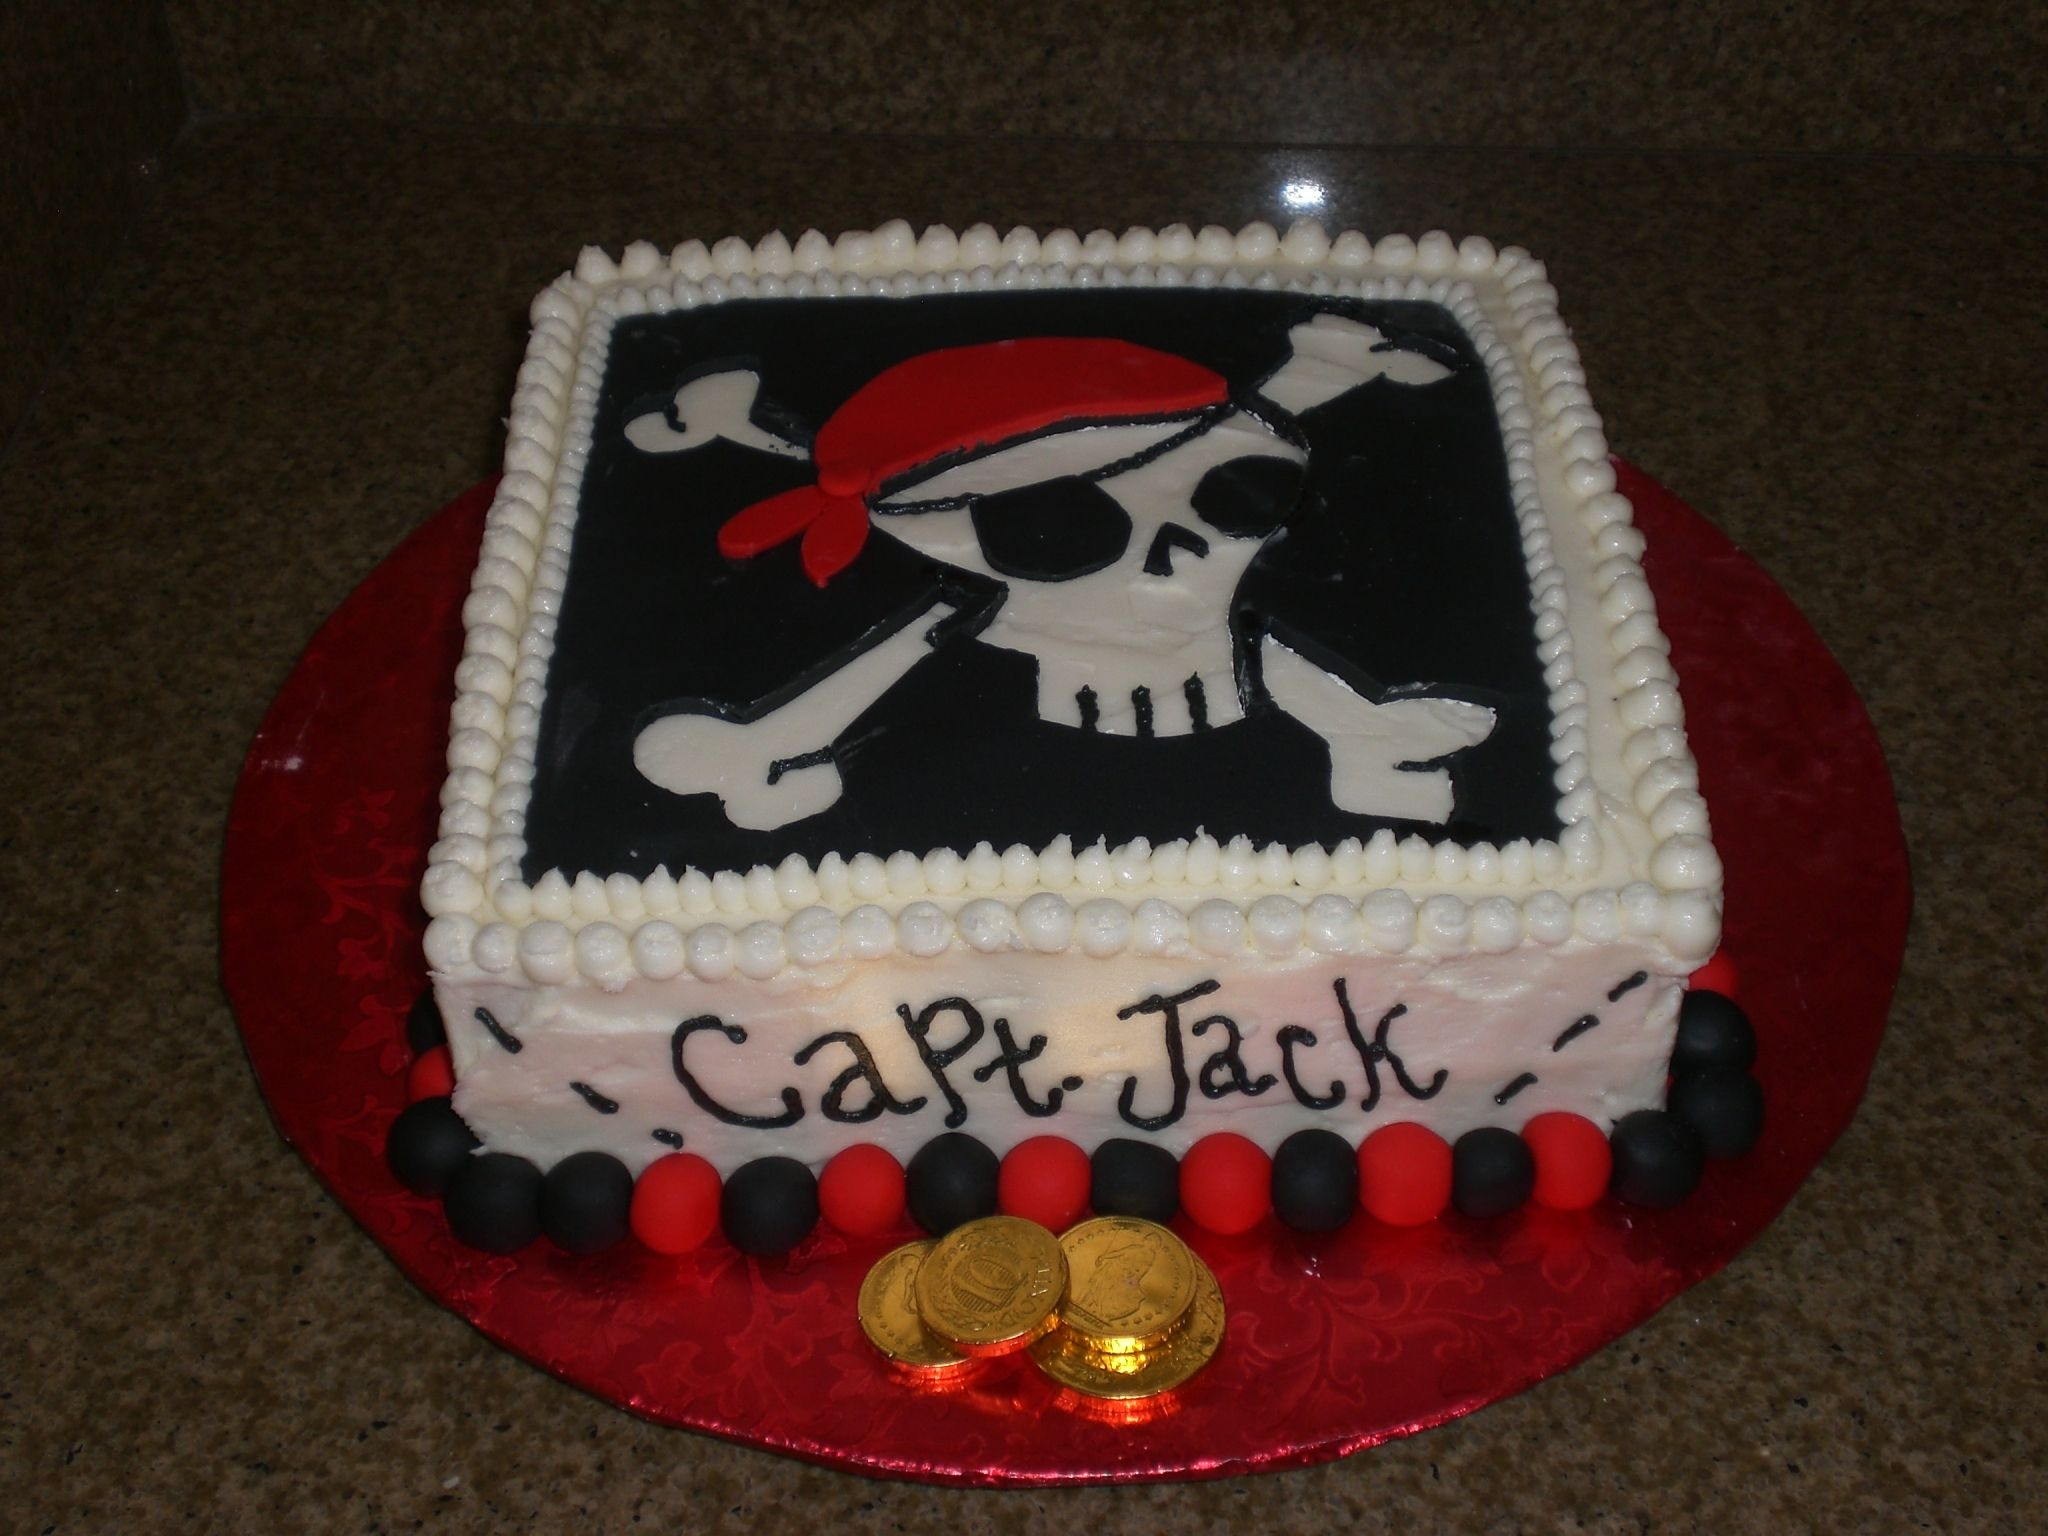 Pirate Cake Lemon cake w/ raspberry filling. Dec. cream cheese frosting. All black and red is fondant. Made for my son's 3rd birthday. Everyon...